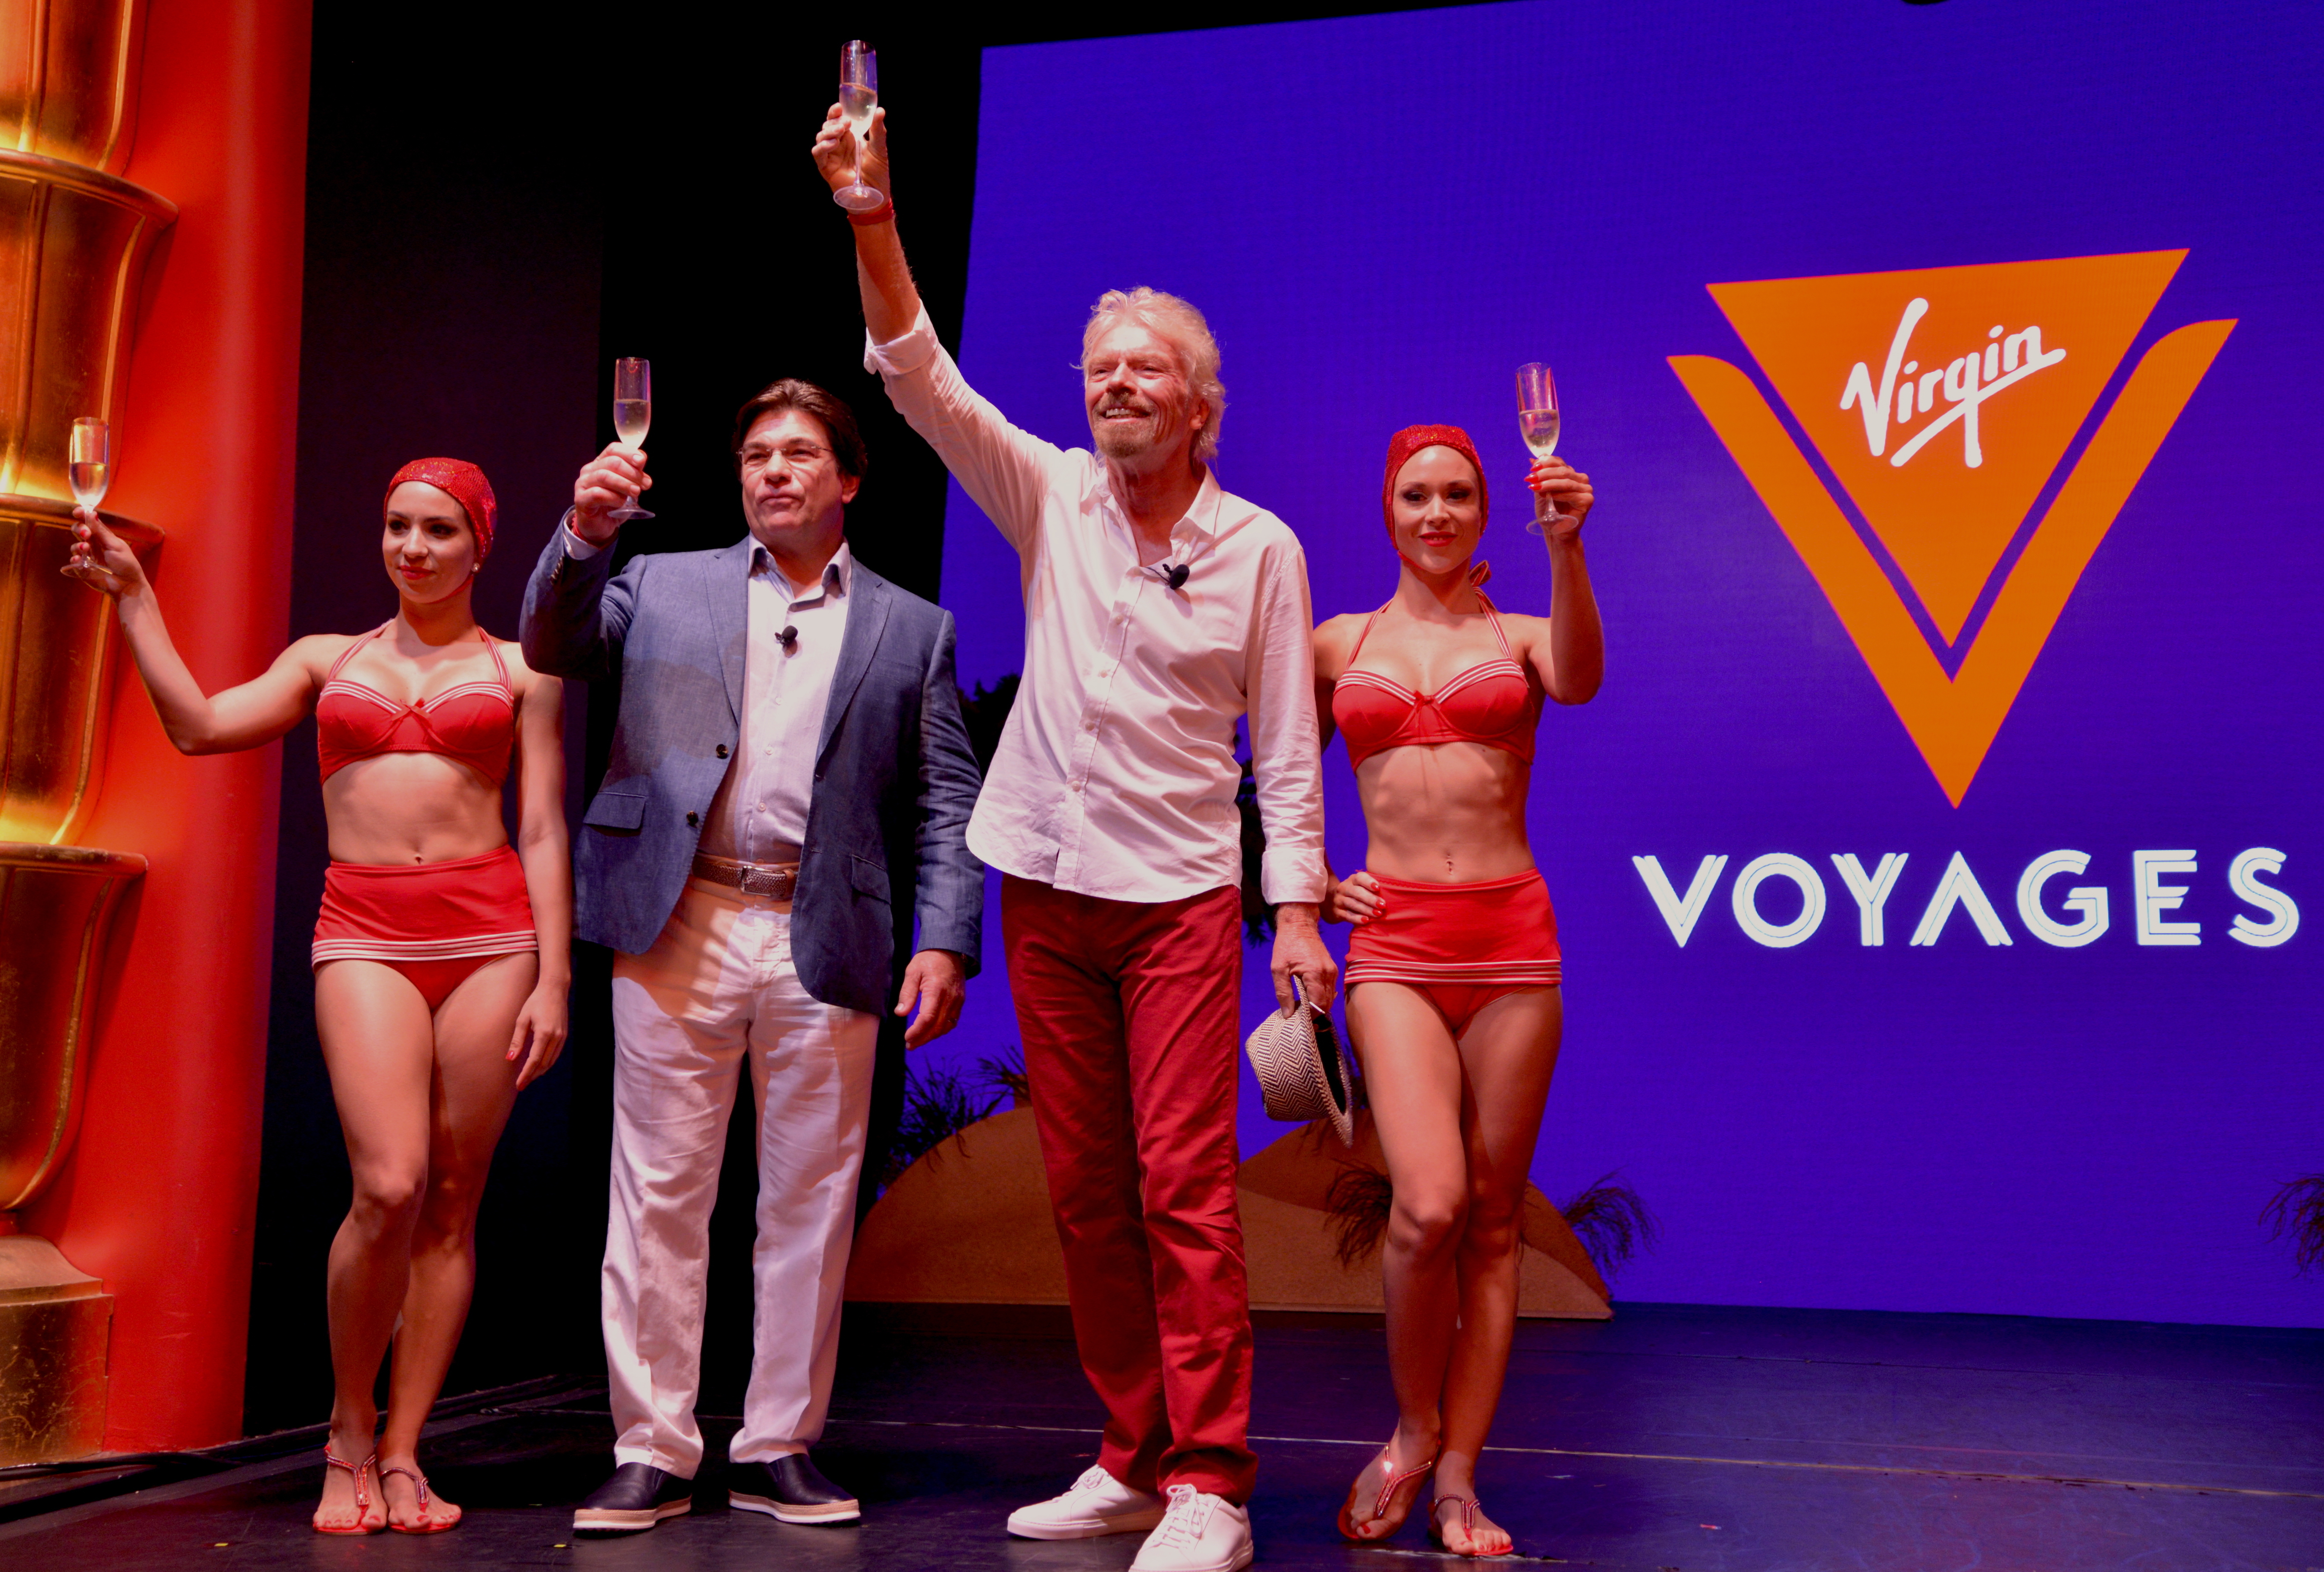 Sir Richard Branson and President & CEO Tom McAlpin unveil Virgin Voyages as the new identity for the company's cruise line.  (Photo: Business Wire)